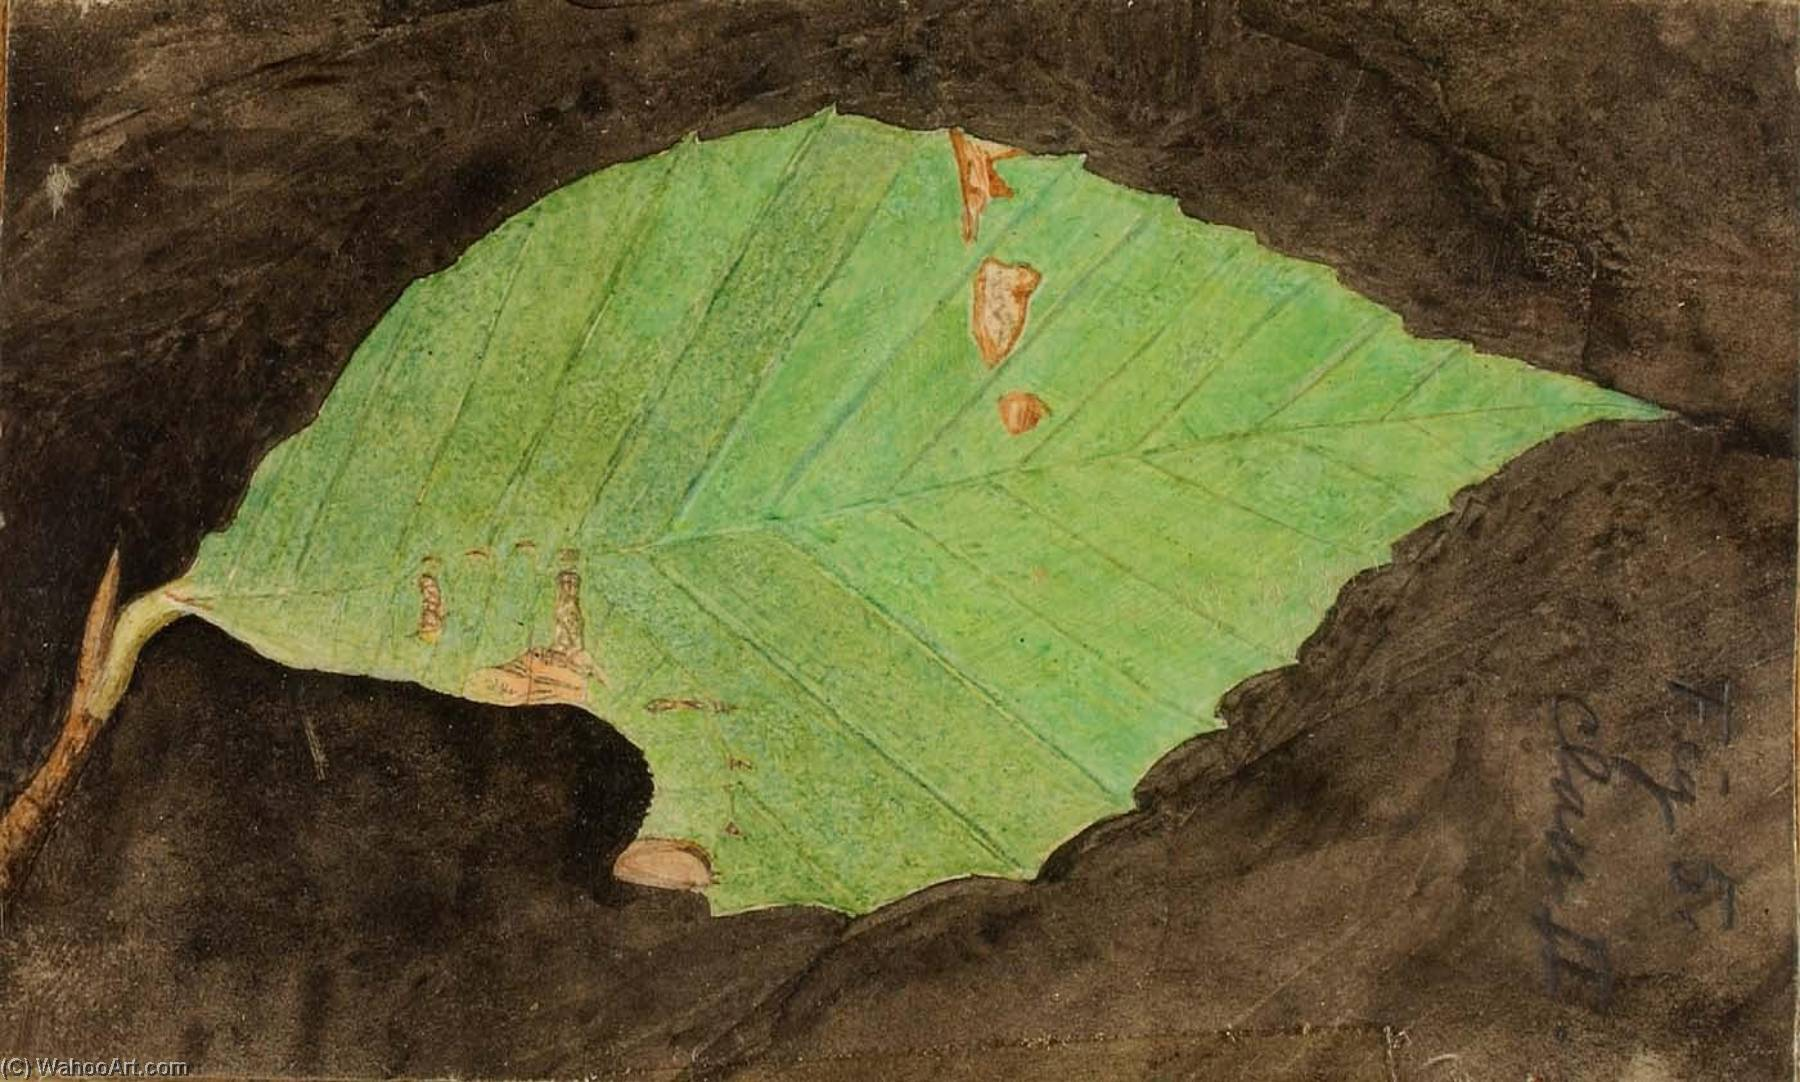 Smaller Spotted Beach Leaf Edge Caterpillar, study for book Concealing Coloration in the Animal Kingdom by Emma Beach Thayer | Museum Quality Reproductions | ArtsDot.com